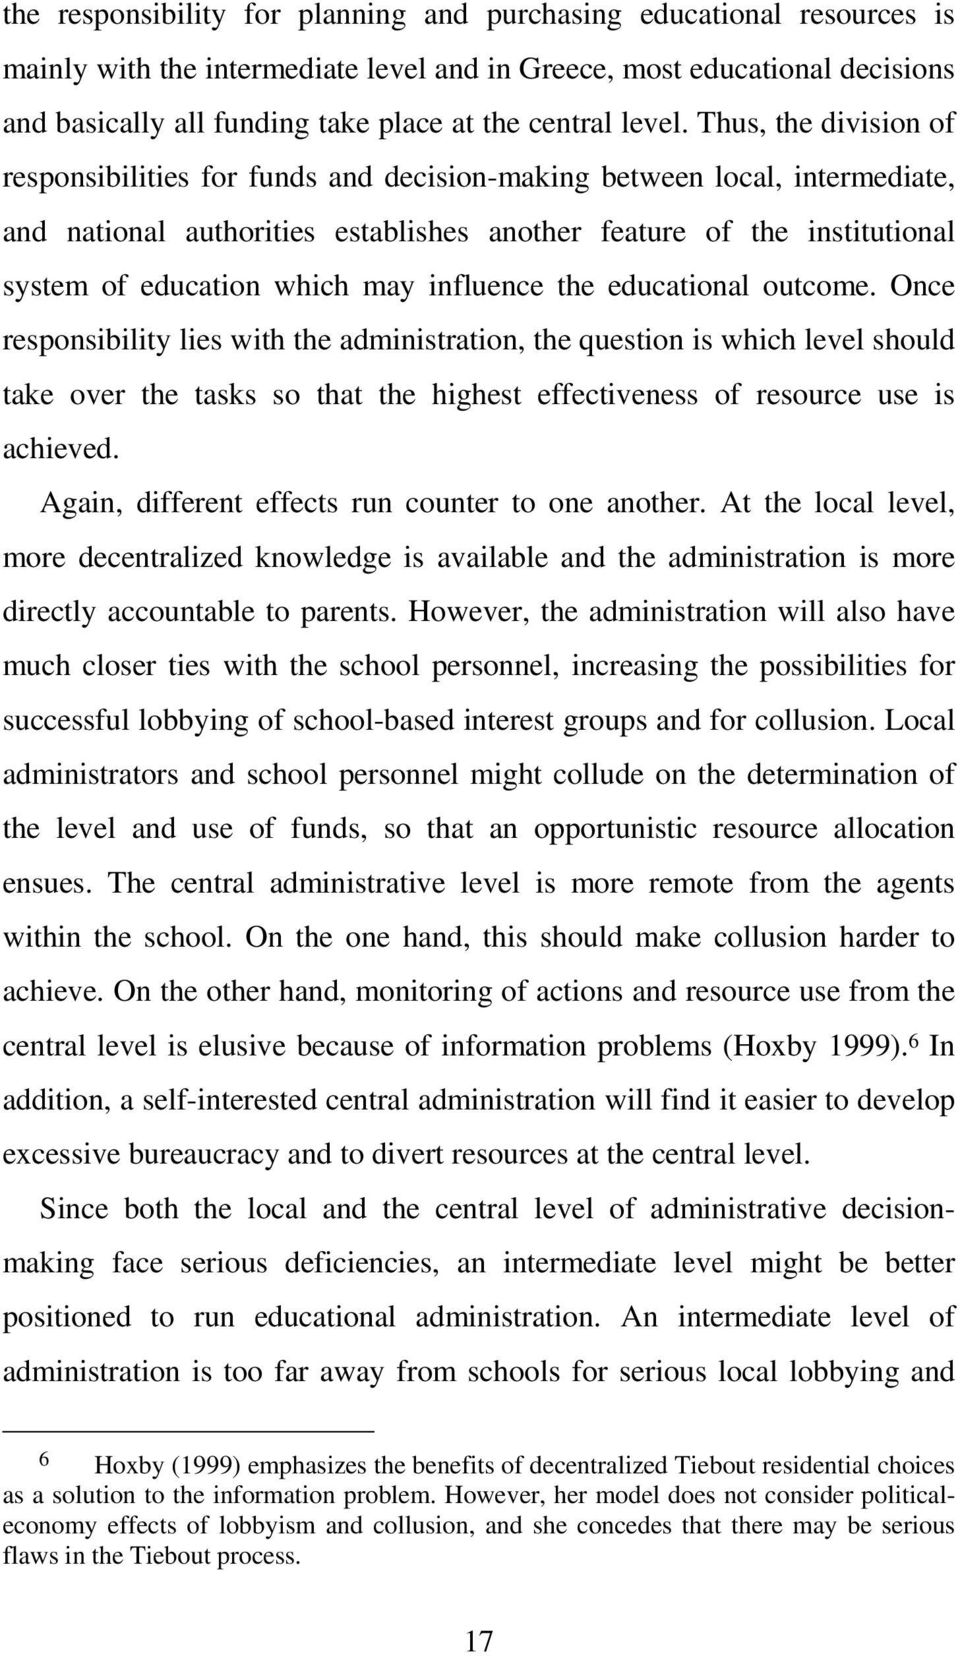 Thus, the division of responsibilities for funds and decision-making between local, intermediate, and national authorities establishes another feature of the institutional system of education which